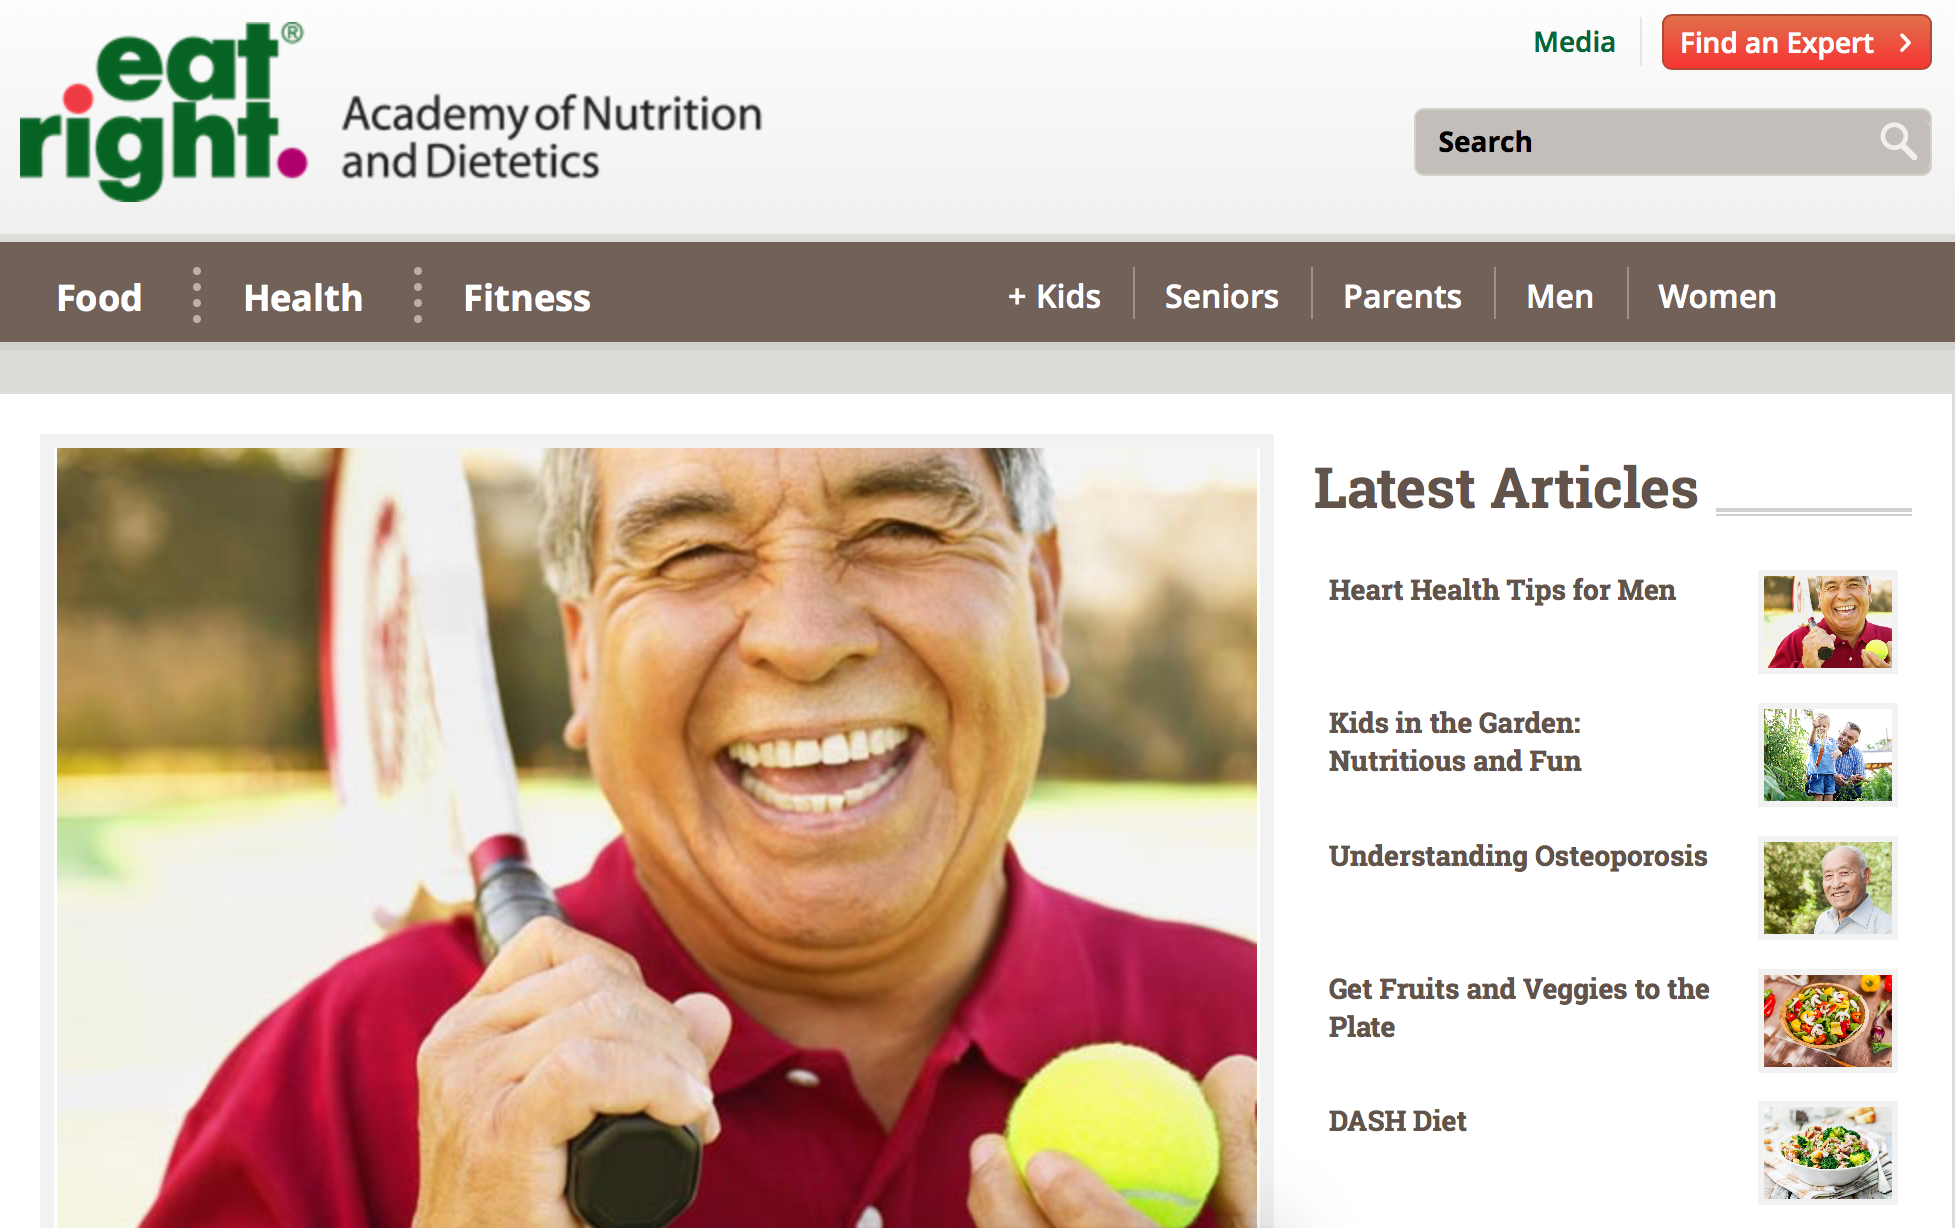 EatRight.org - Academy of Nutrition & Dietetics (AND)